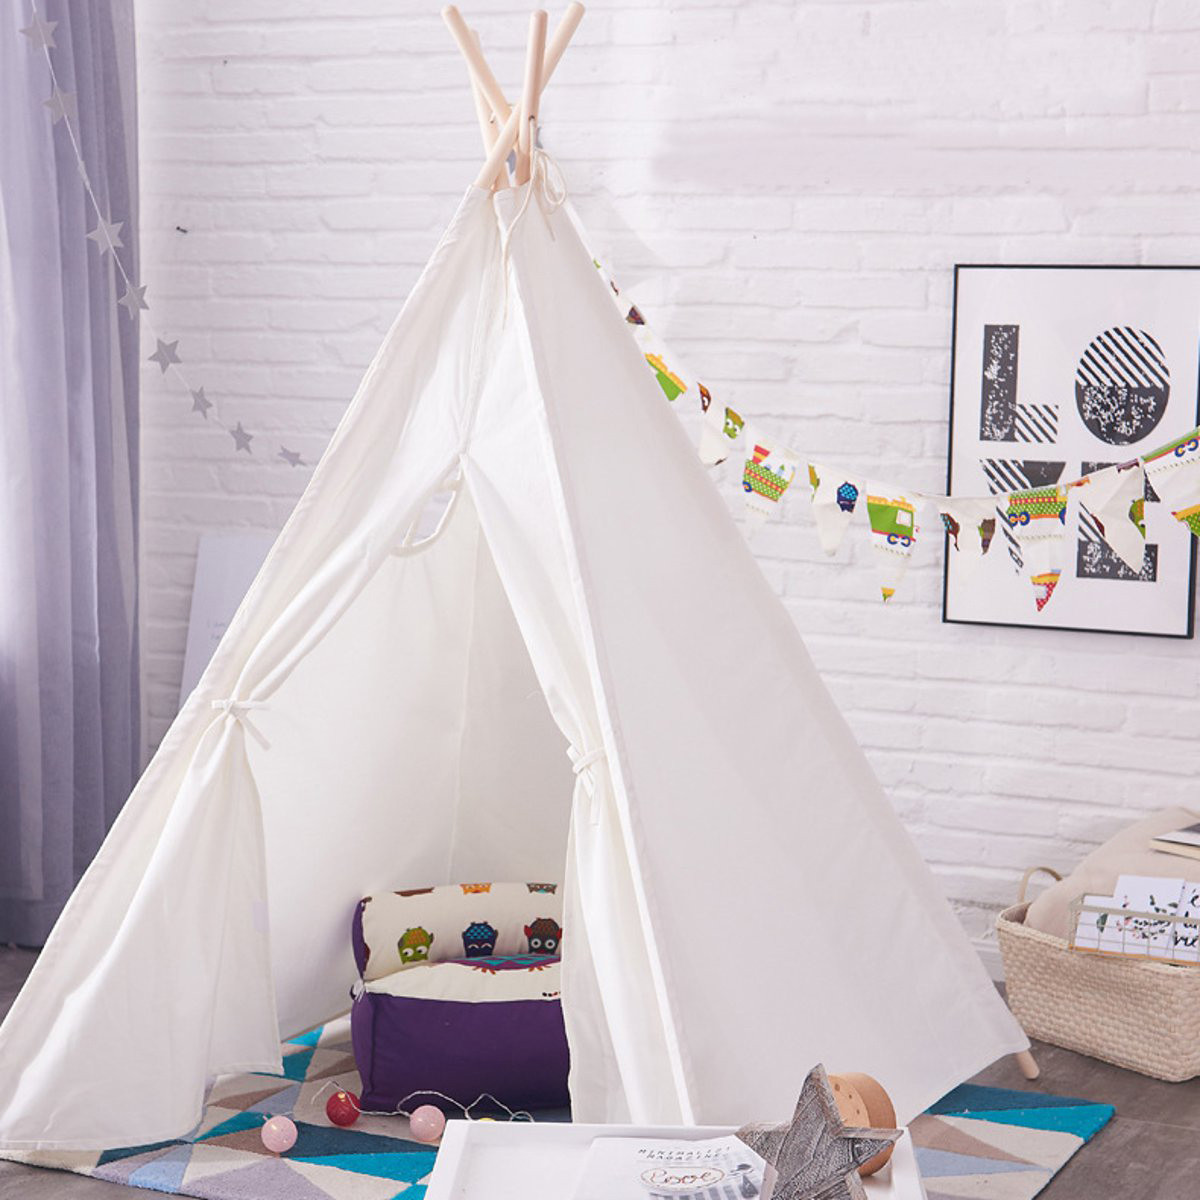 Kids Indoor Teepee  Tents for Kids Outdoor Indoor Strip Teepee Tent for Girls